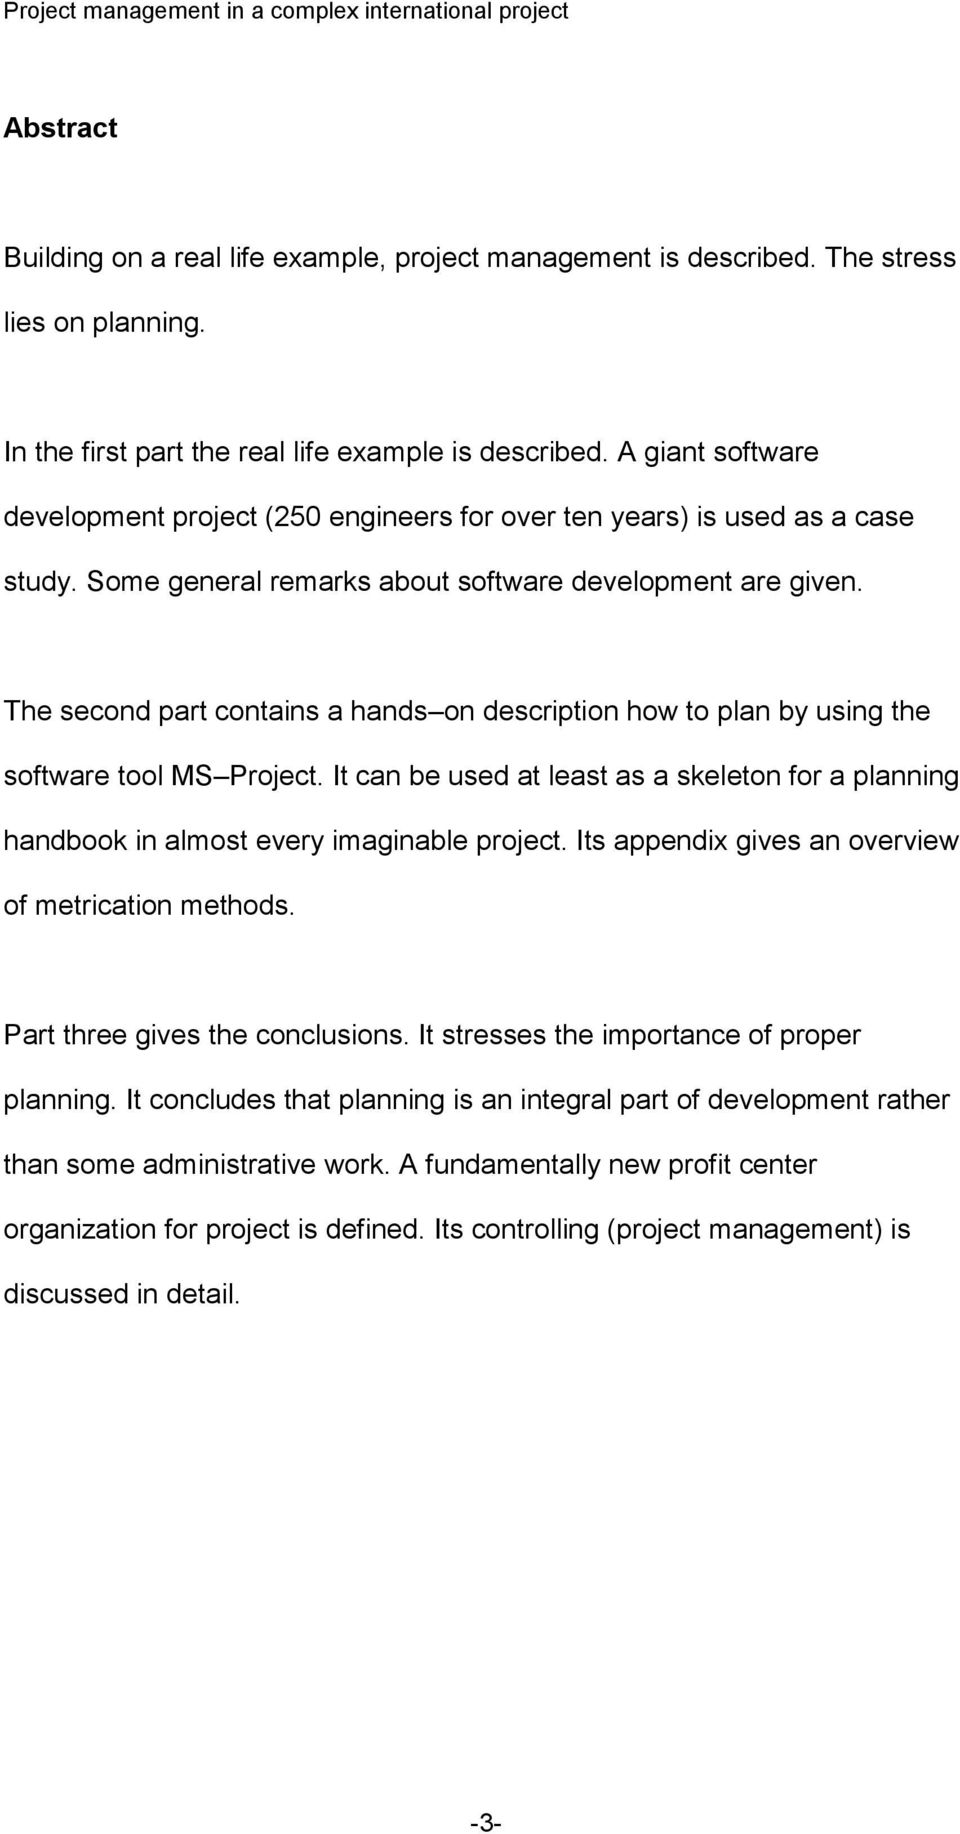 The second part contains a hands on description how to plan by using the software tool MS Project. It can be used at least as a skeleton for a planning handbook in almost every imaginable project.